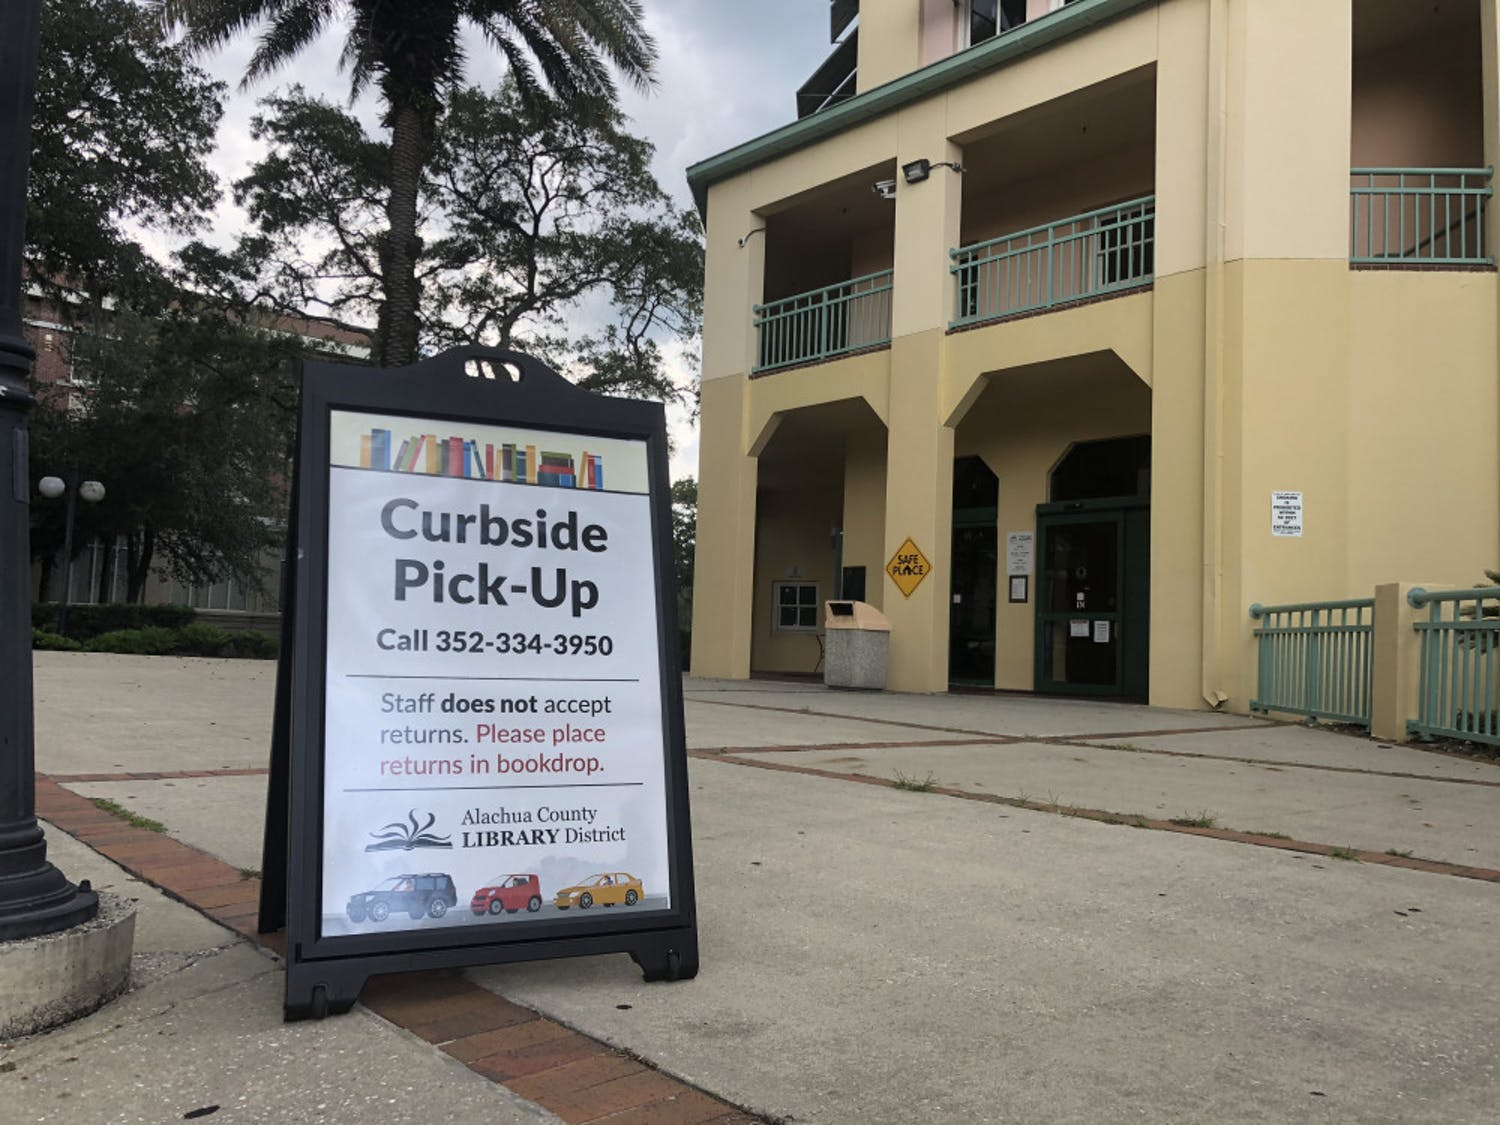 Signs outside of the Headquarters Branch of the Alachua County Library District direct patrons interested in curbside service.